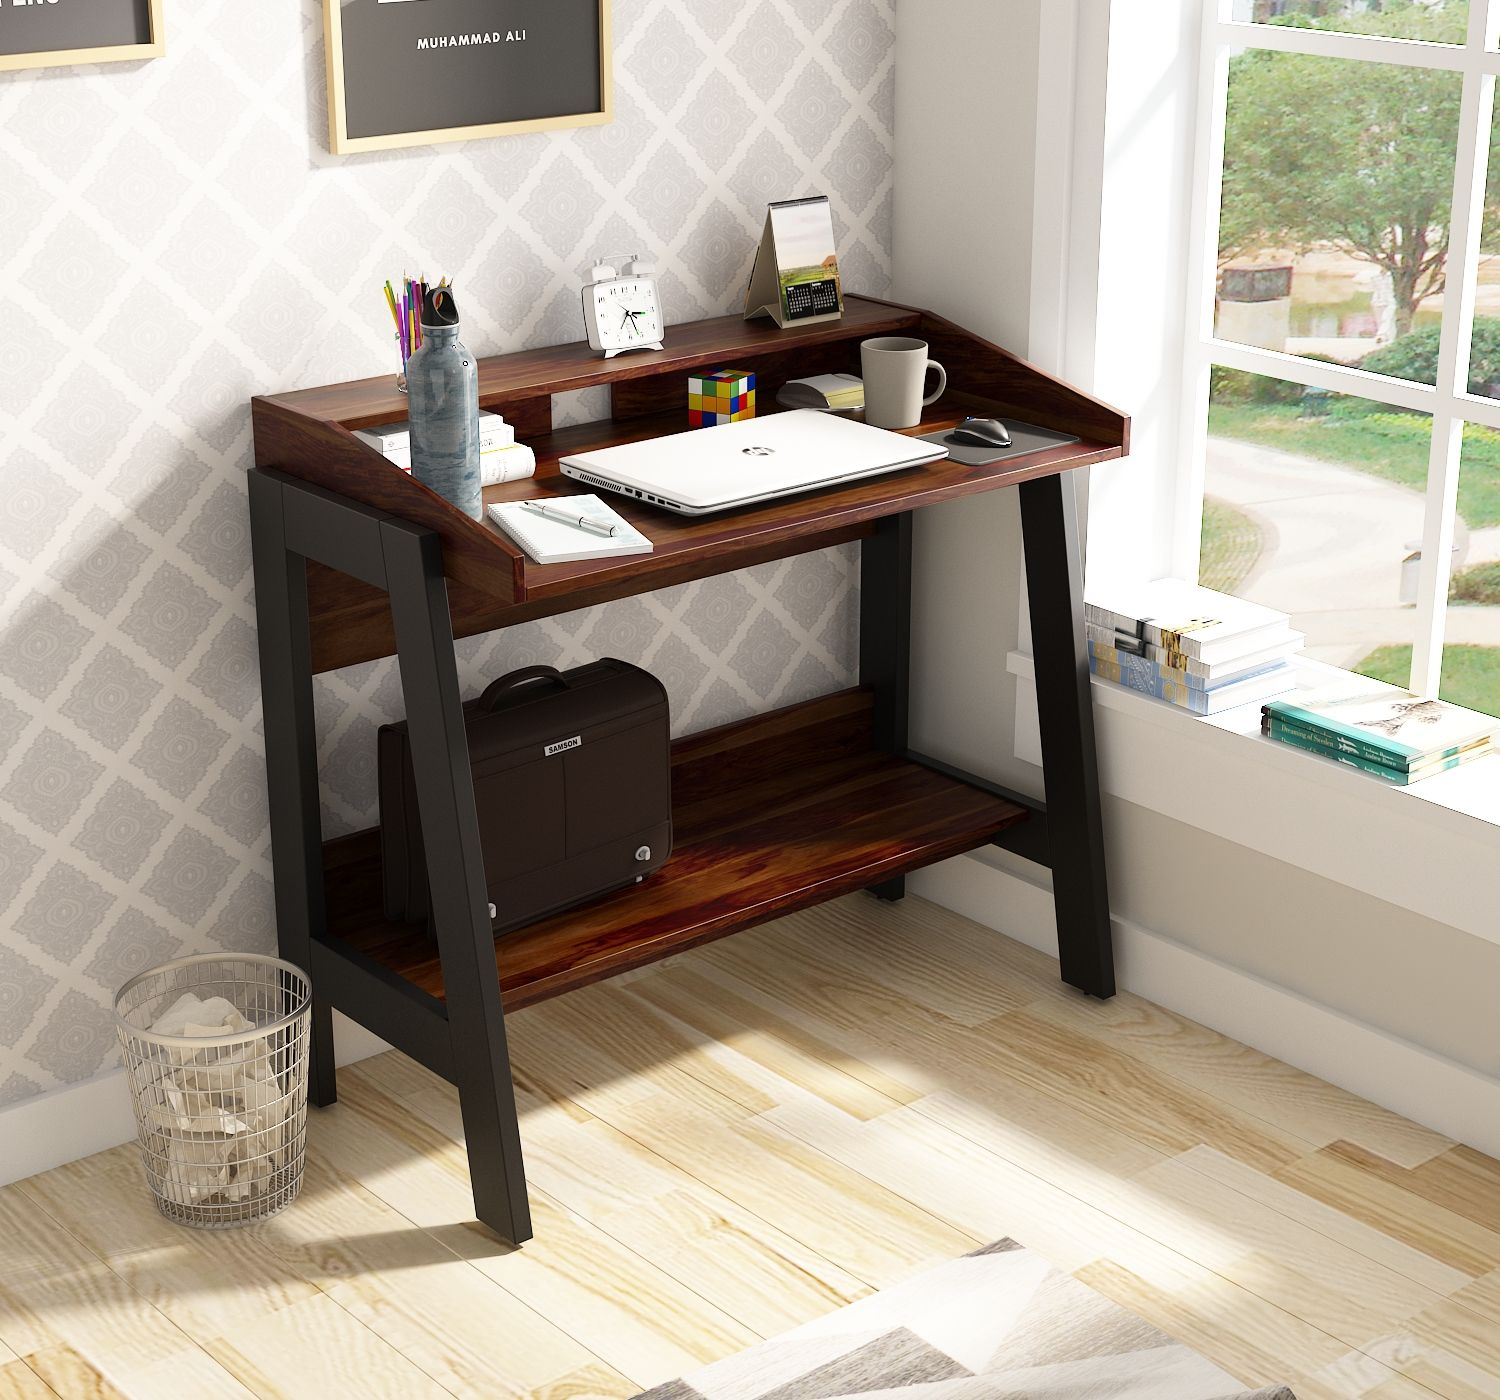 Study Room Furniture Online - The Ideal Way to Shop